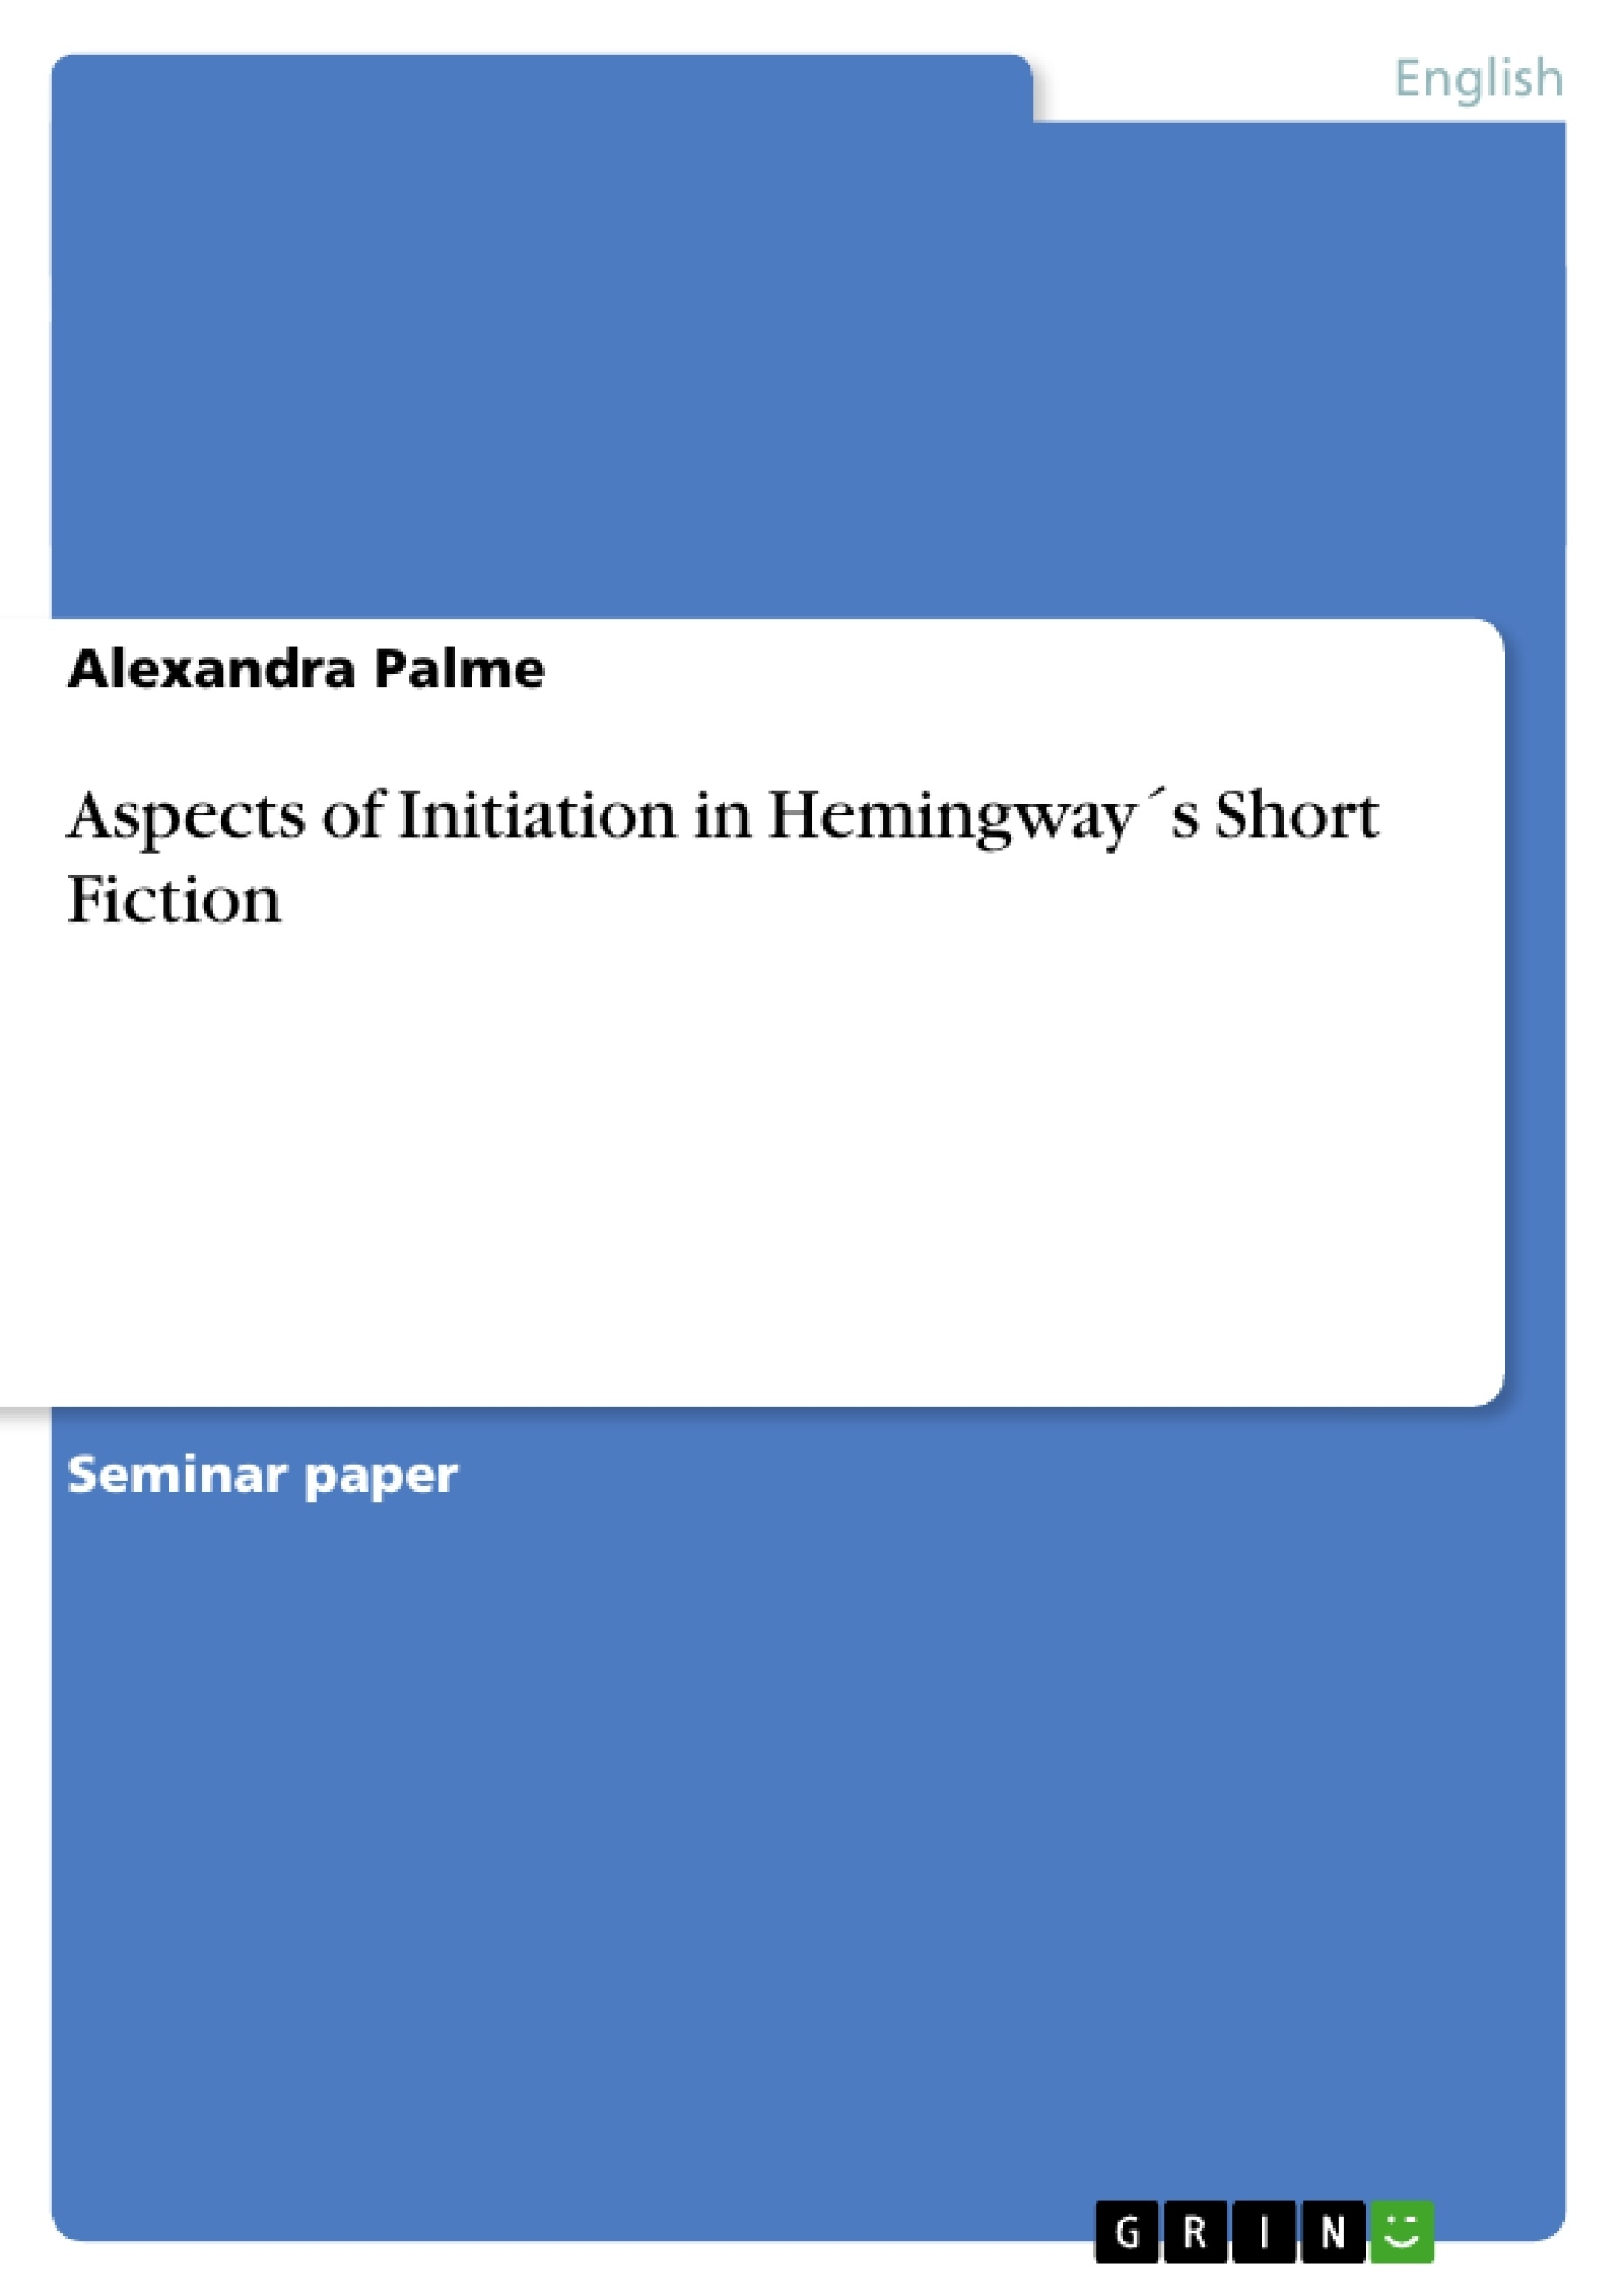 Title: Aspects of Initiation in Hemingway´s Short Fiction